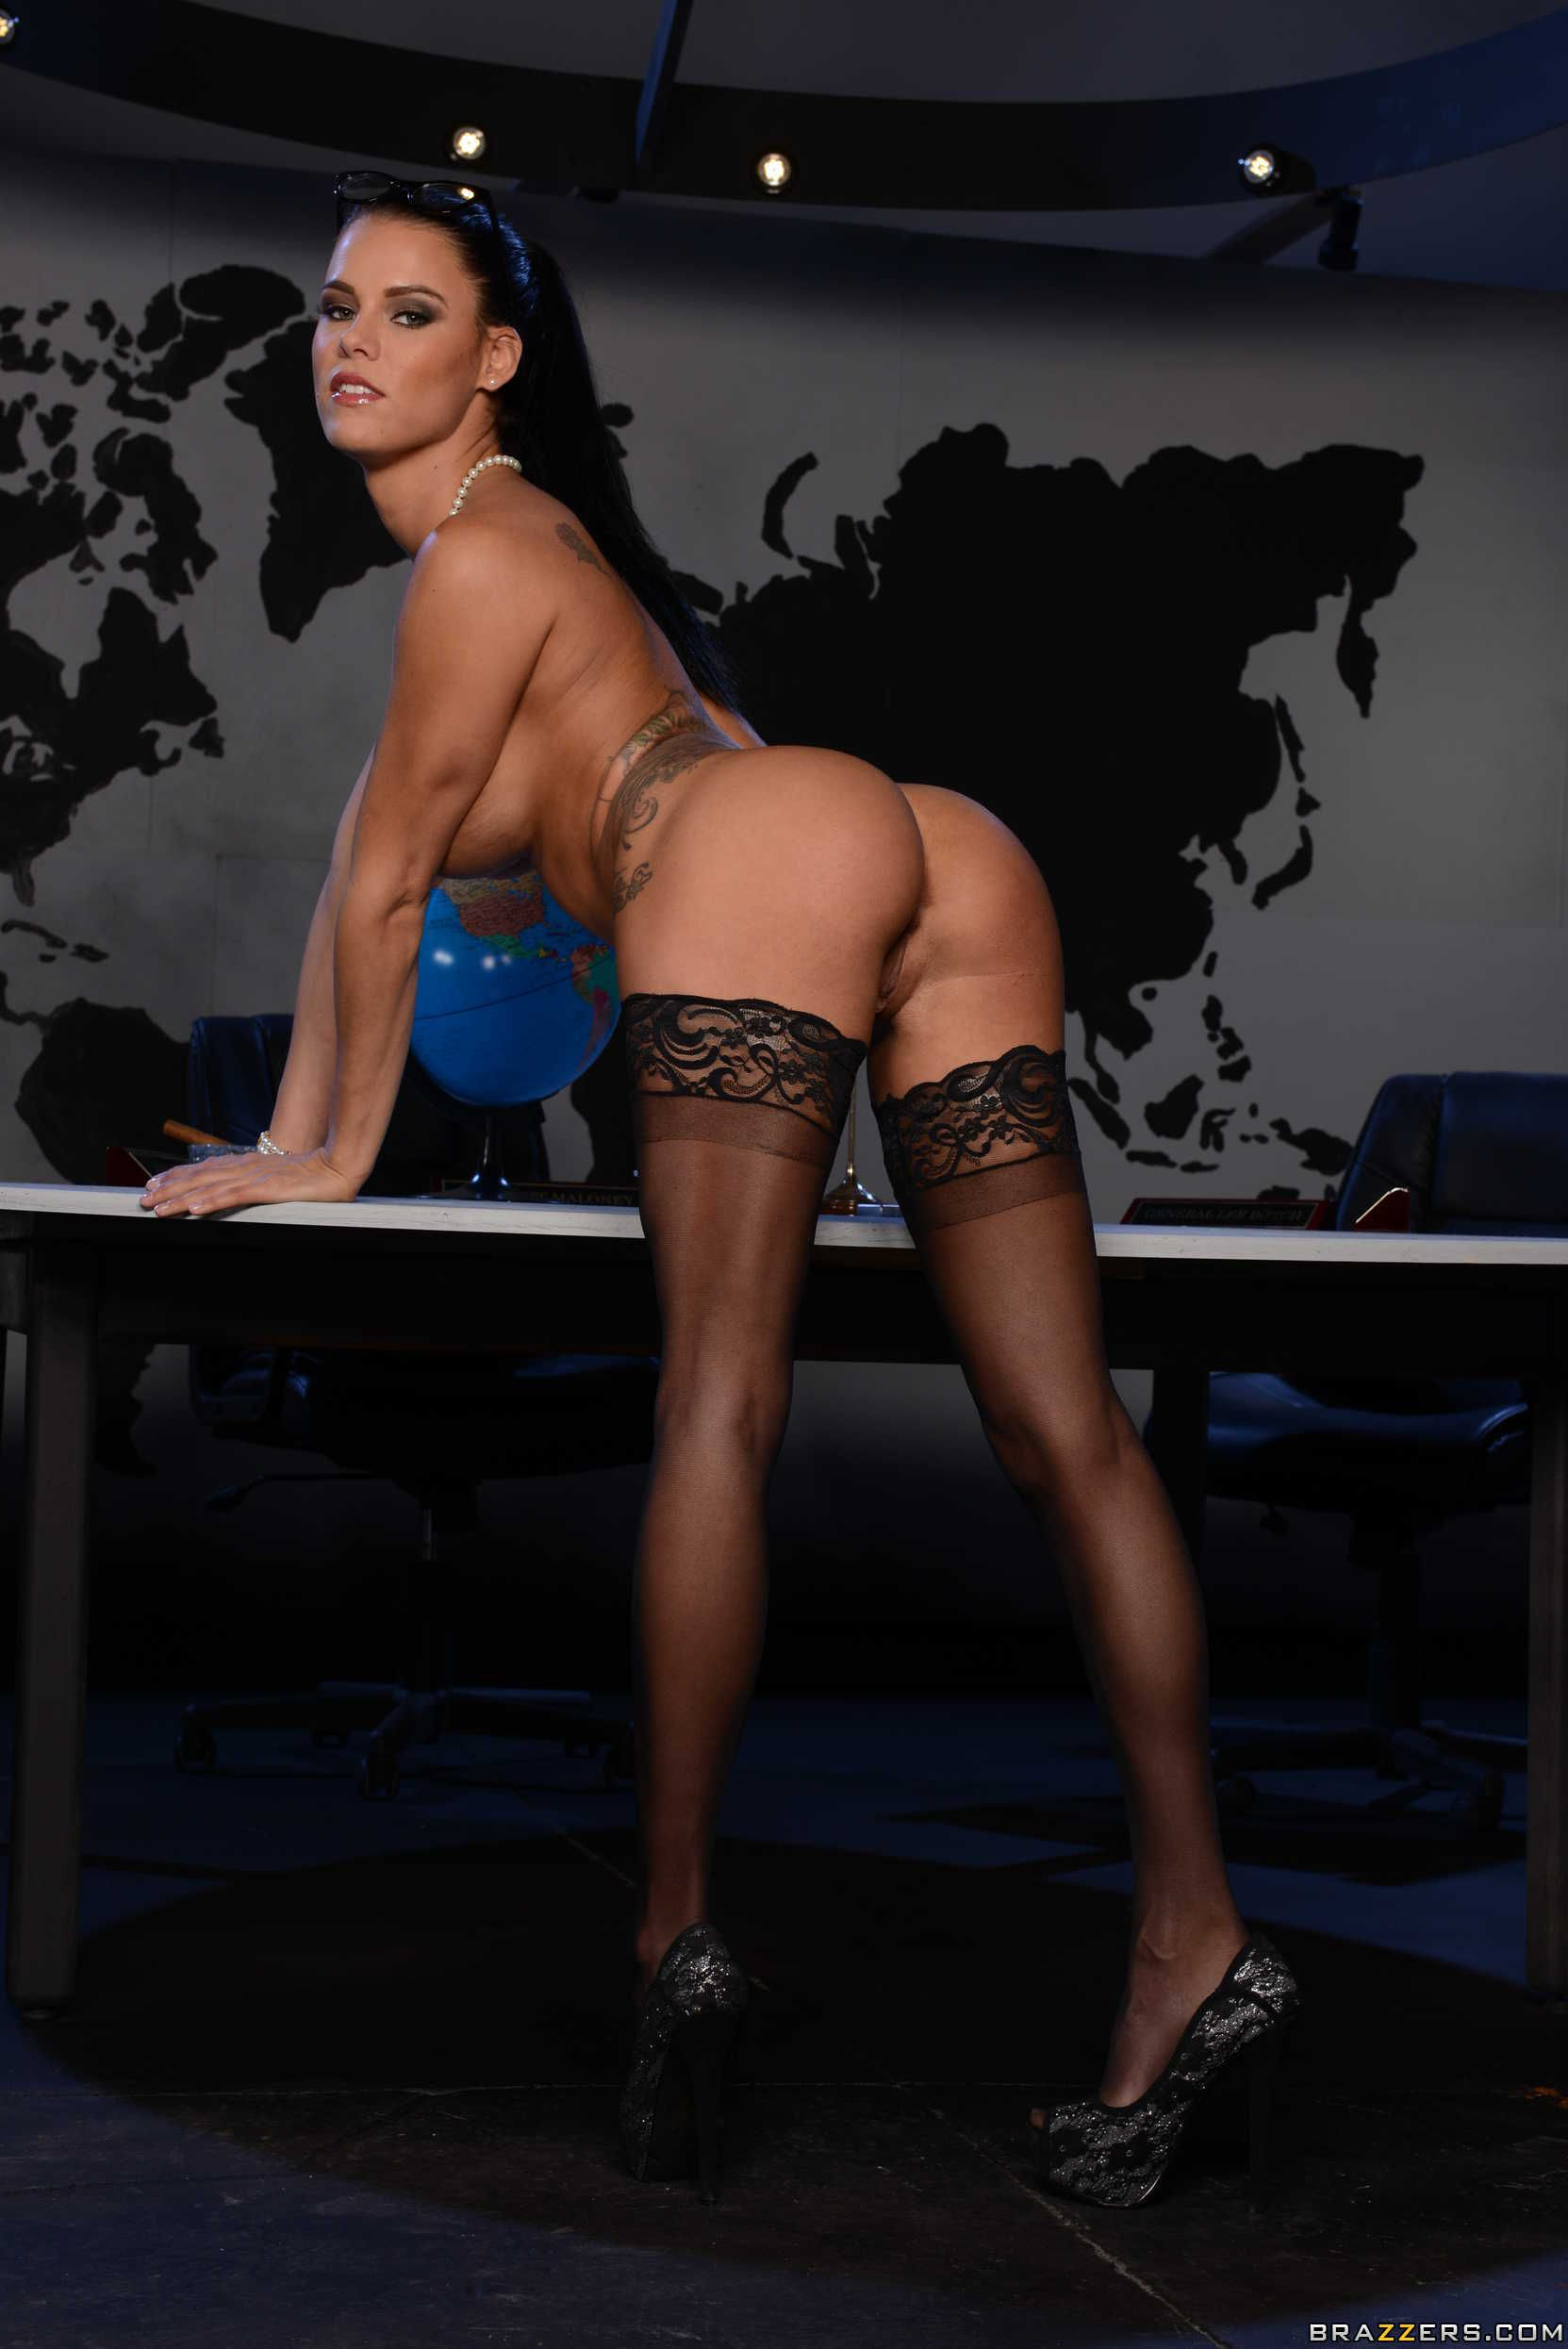 Peta jensen stockings